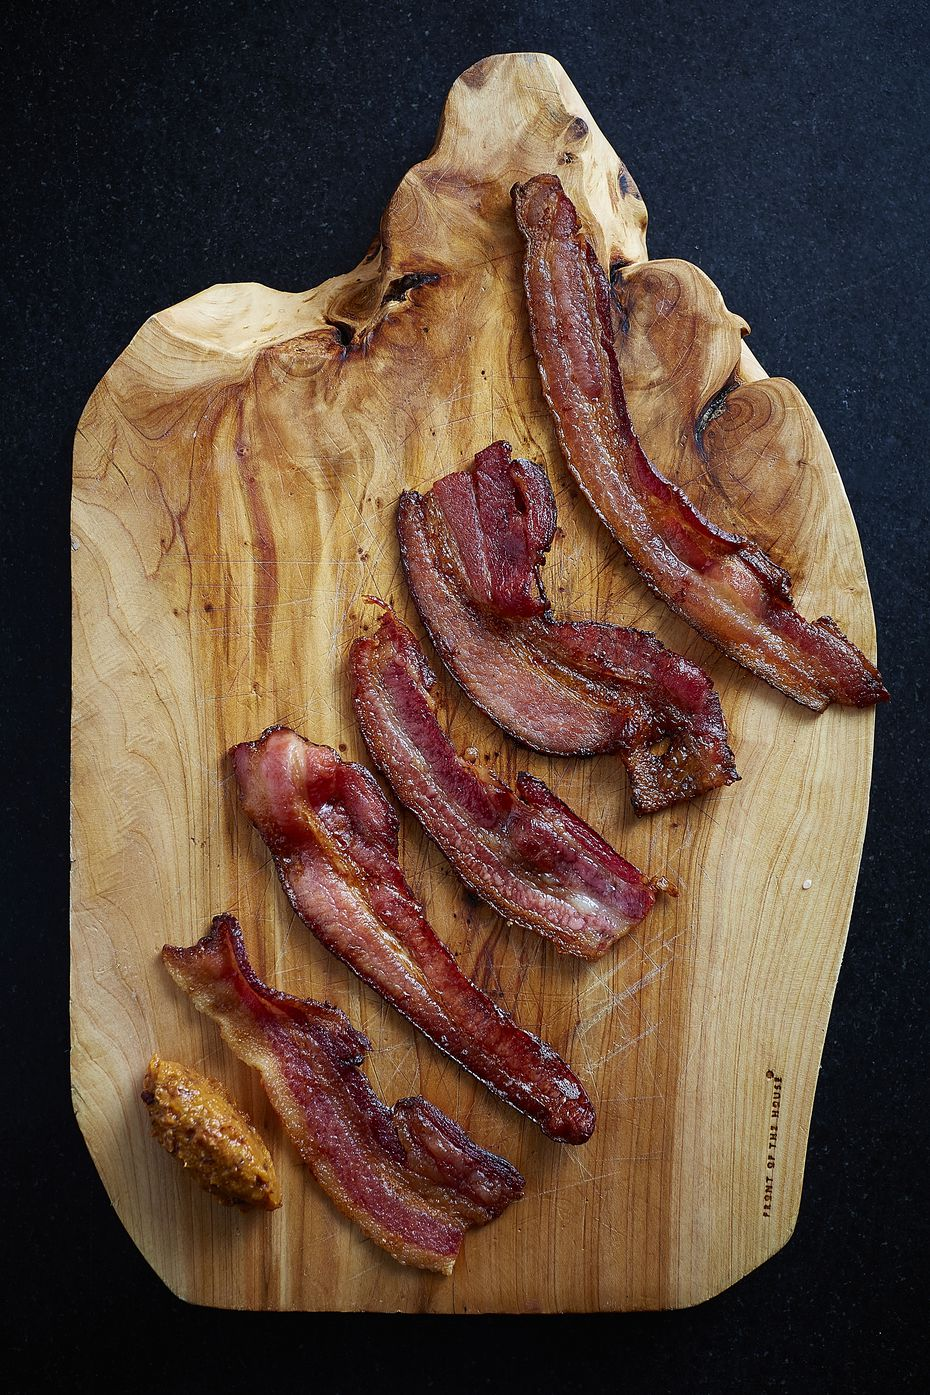 If you're spending New Year's Eve 2020 at home, make it special. Knife Steakhouse in Dallas and Plano is selling a $16 bacon tasting that you can enjoy from the comfort of your own couch.